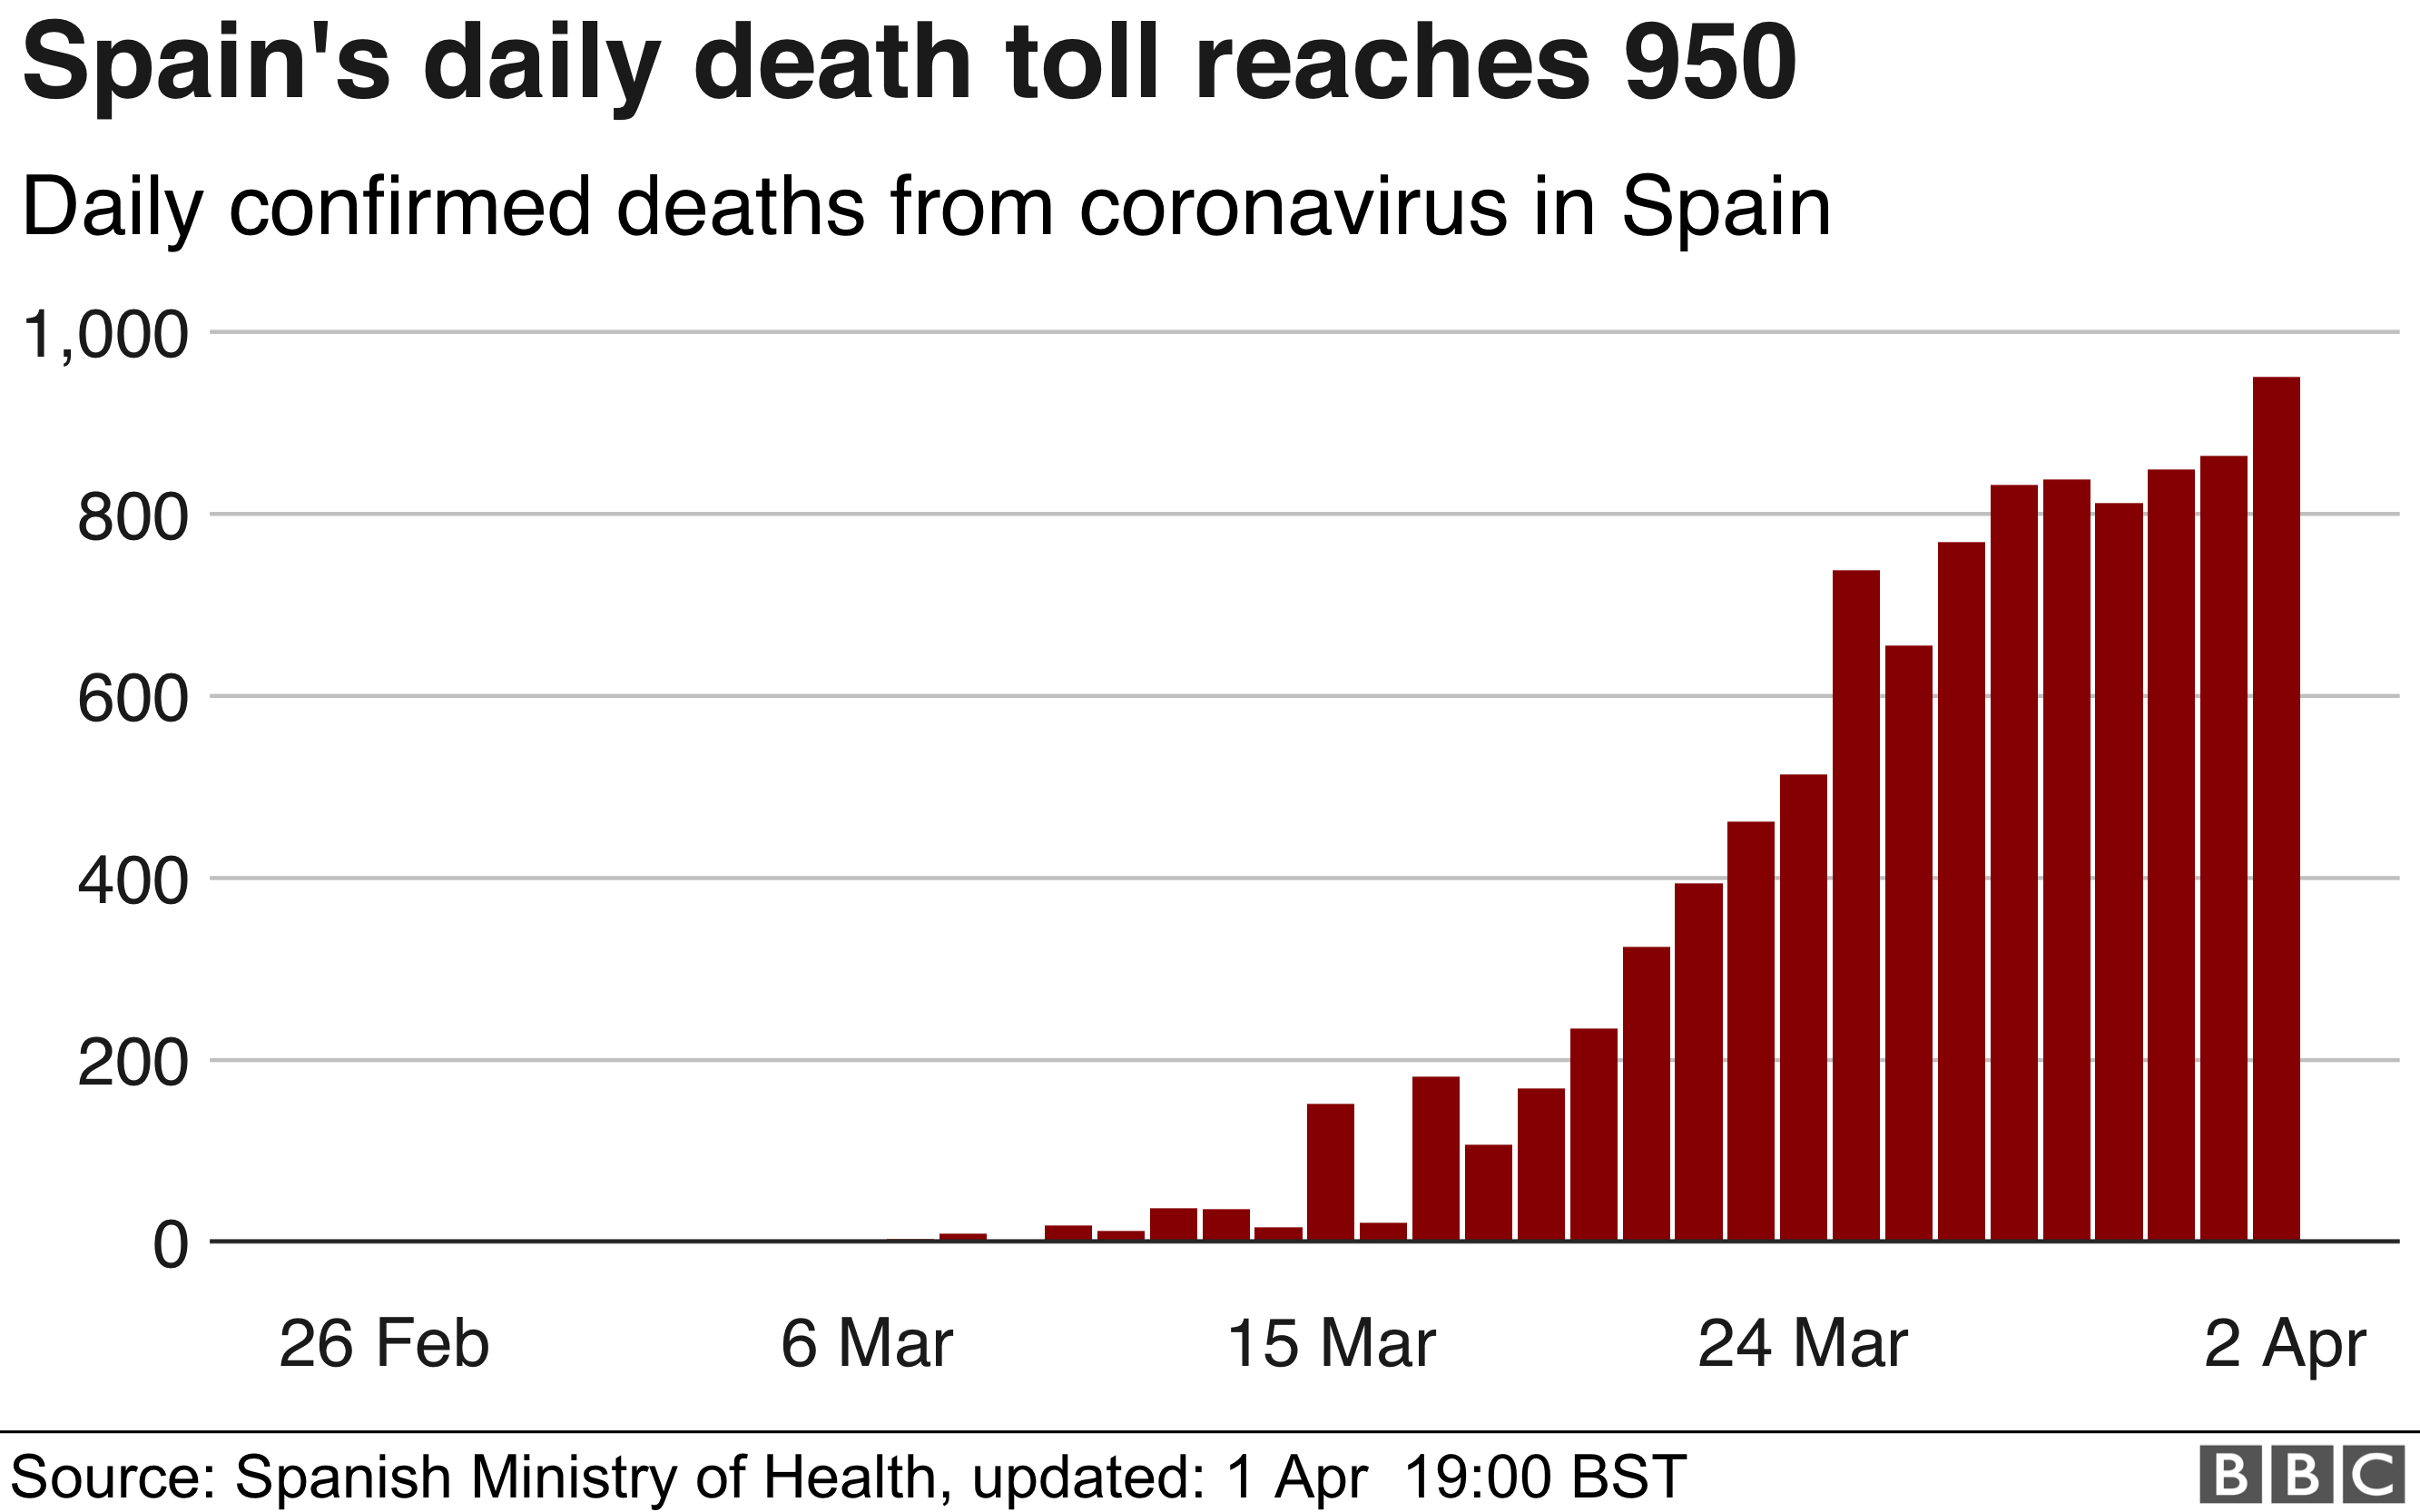 Chart showing Spain' daily coronavirus death toll